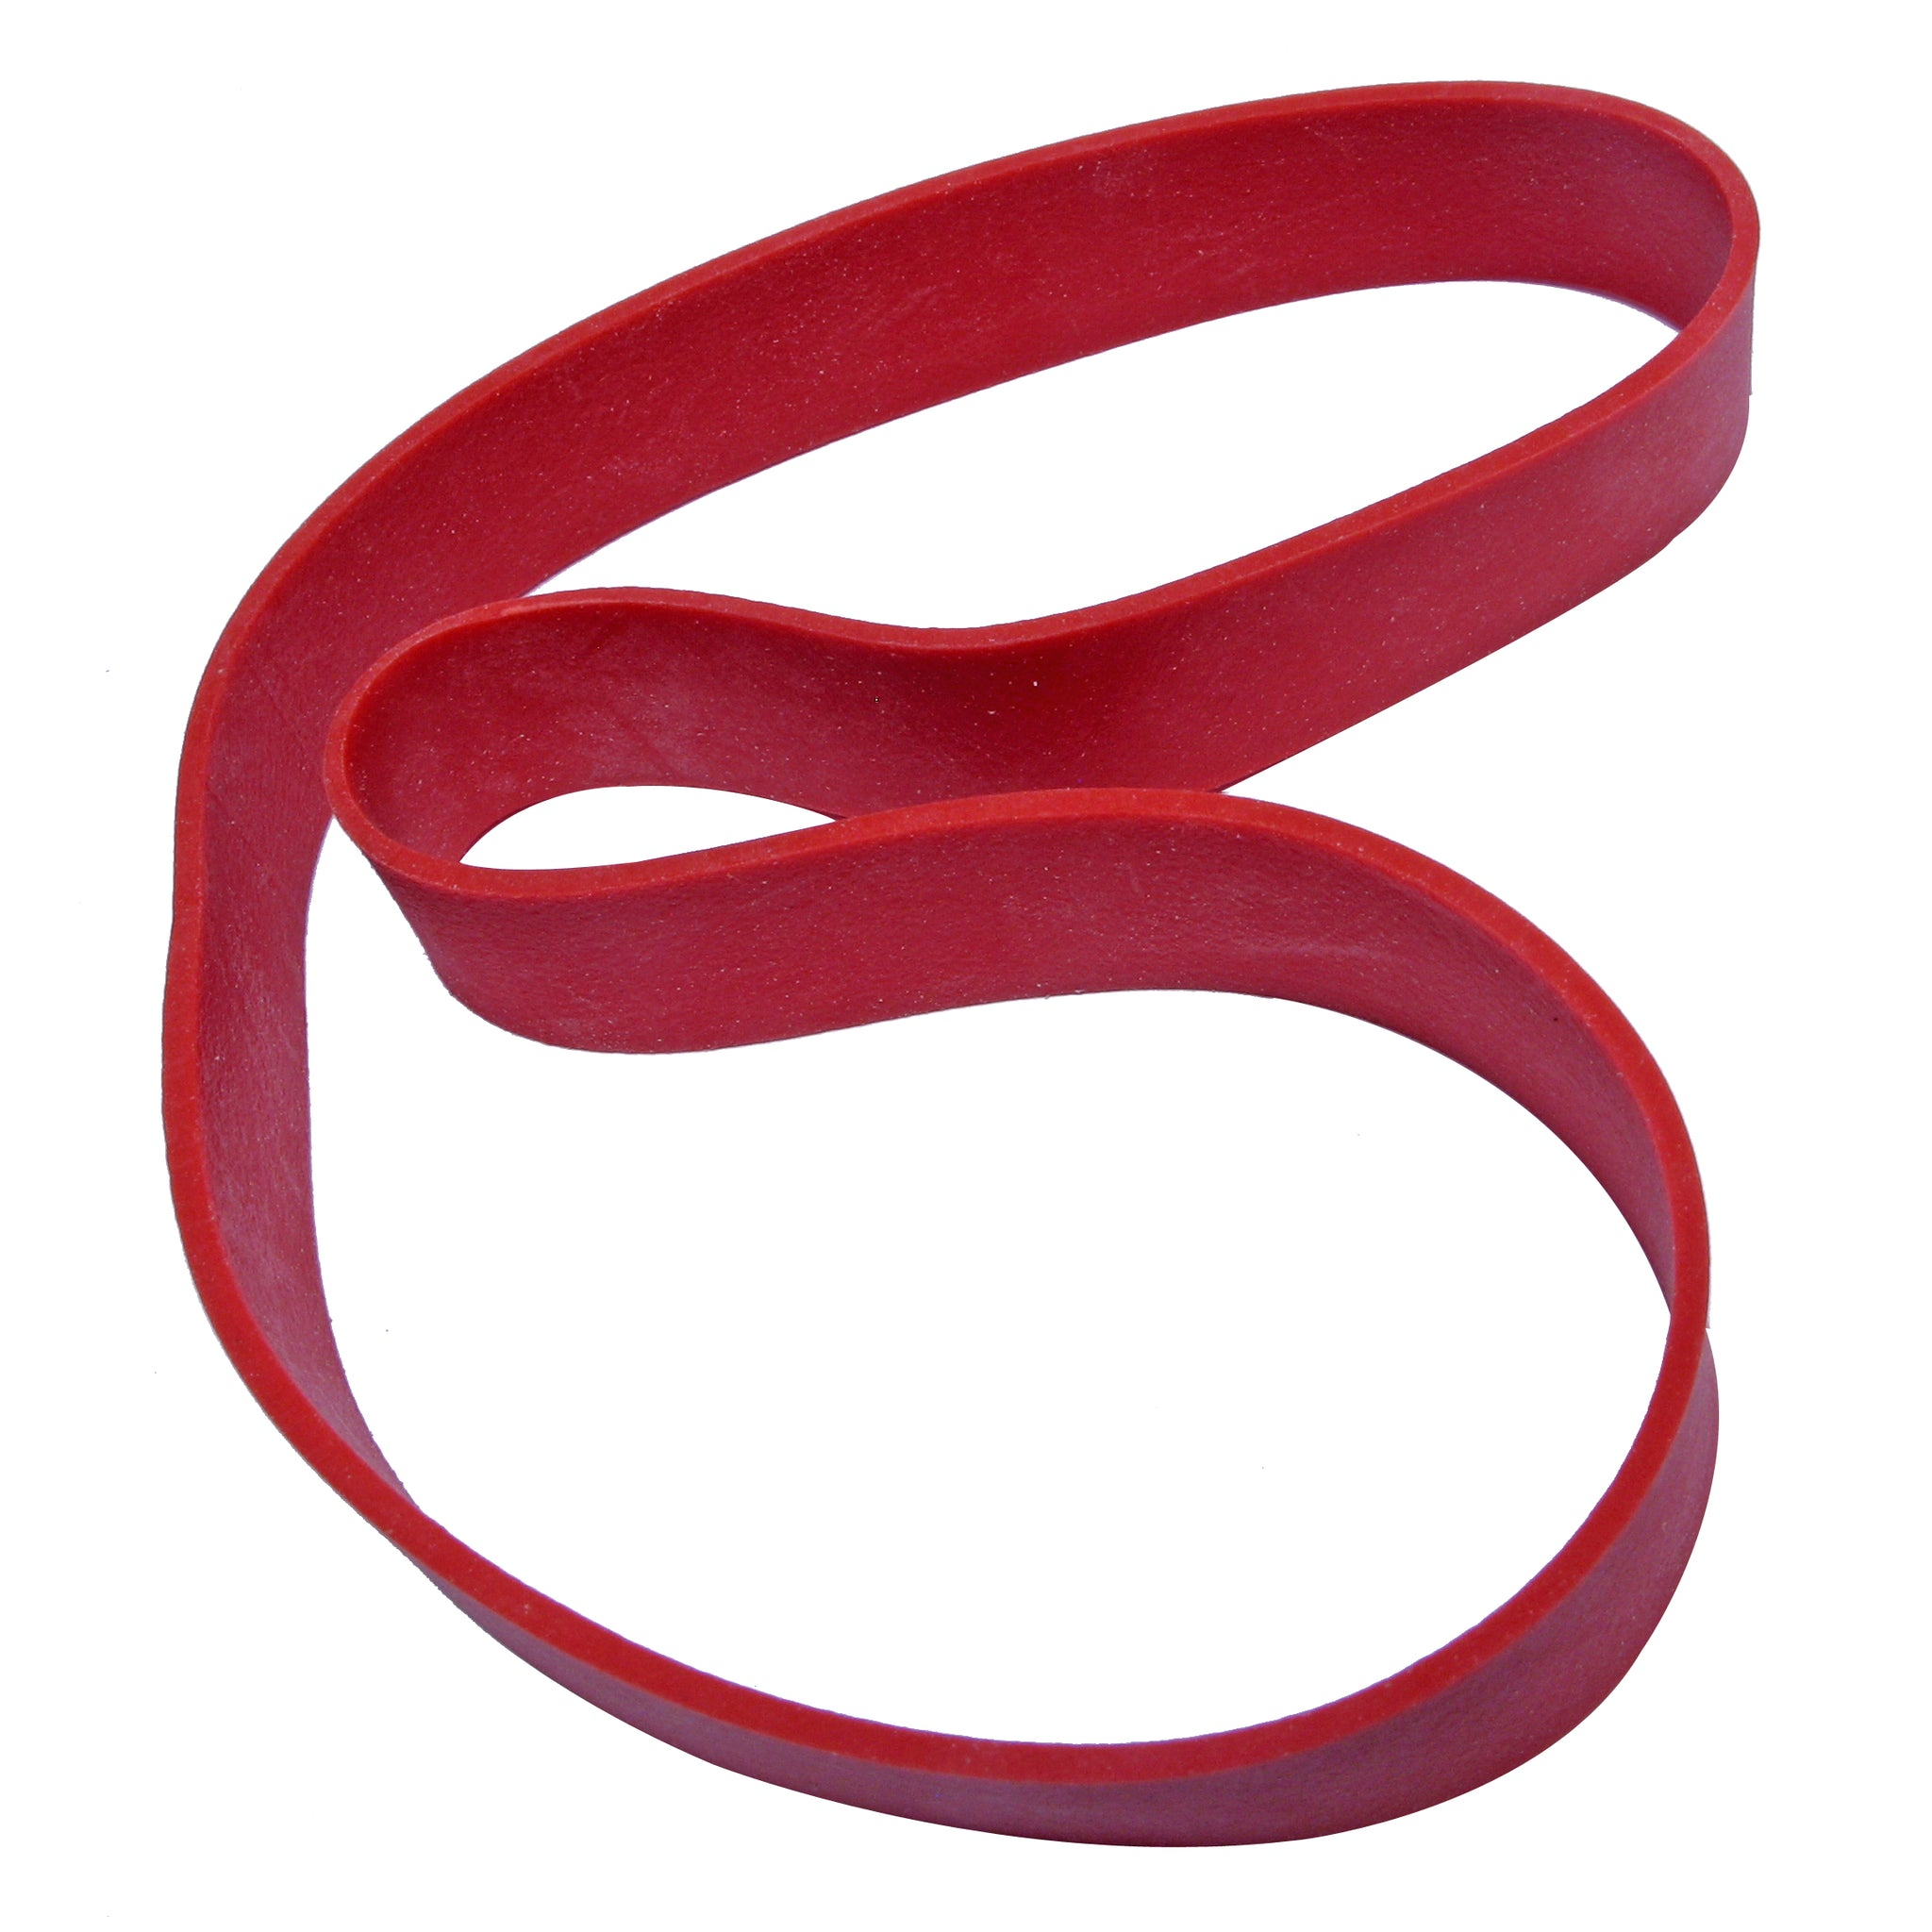 8-1/2 Inch Rubber Bands (30 pc DISPLAY)